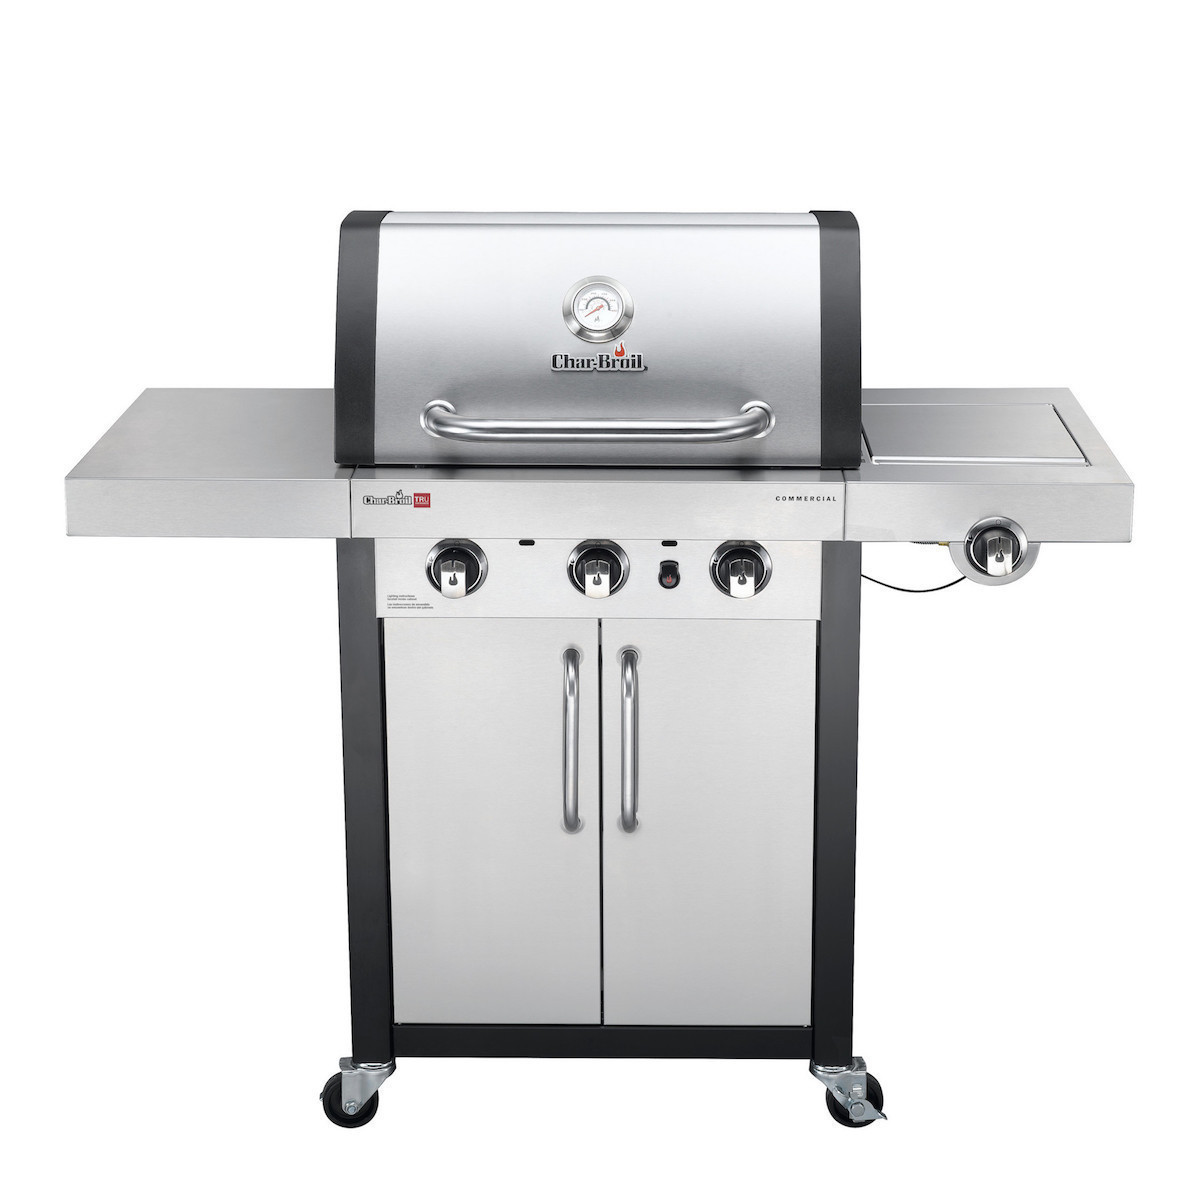 https://d2w079qmvzh0vc.cloudfront.net/opportunities/1354/blog_images/Char-Broil_Commercial_Series_3_burner.jpg